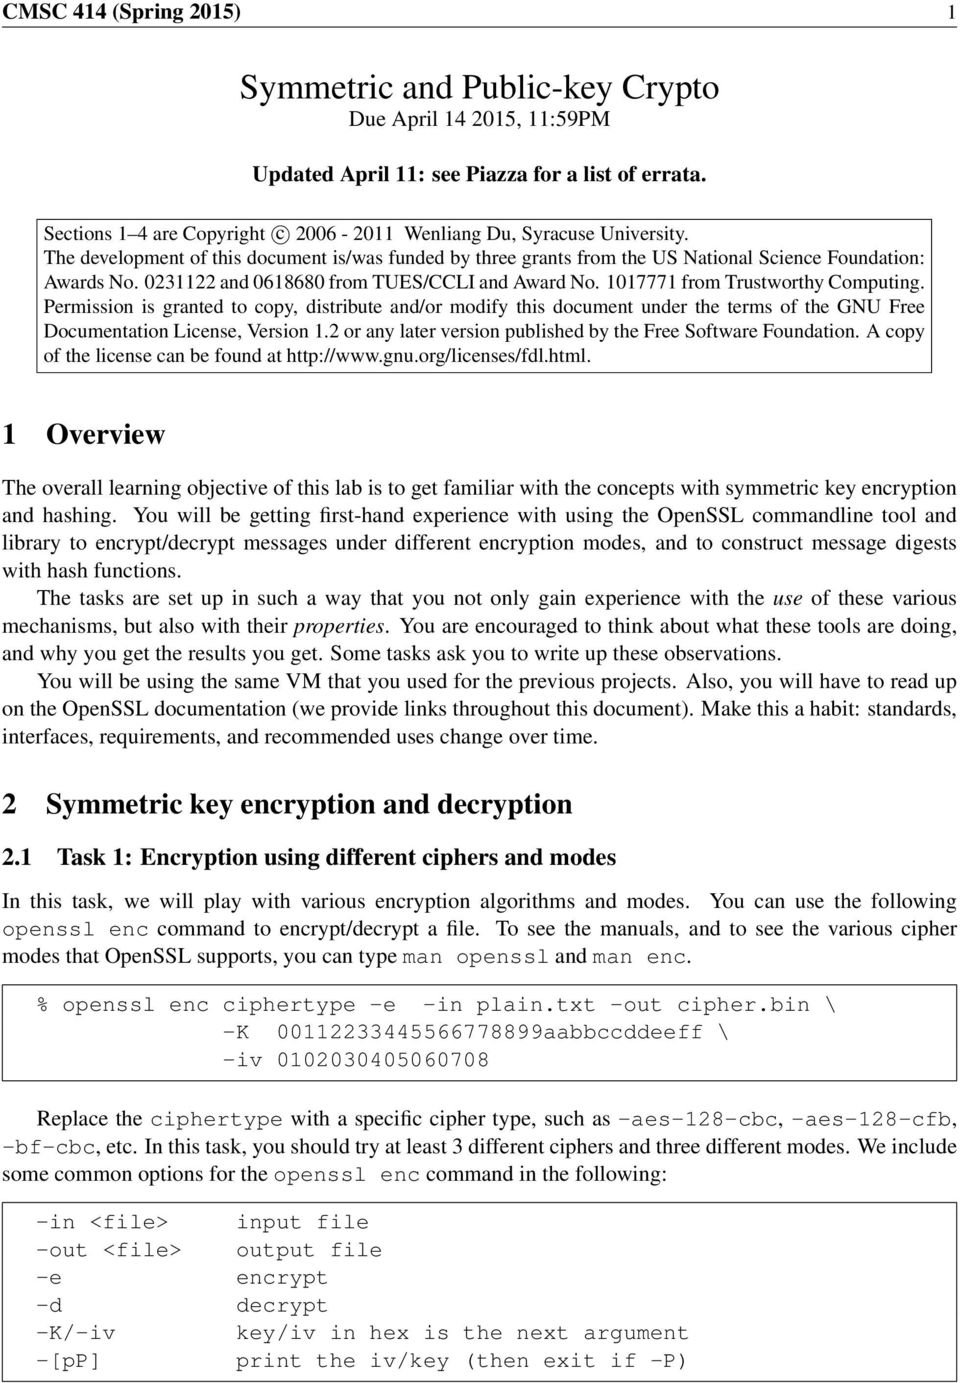 Symmetric and Public-key Crypto Due April , 11:59PM - PDF